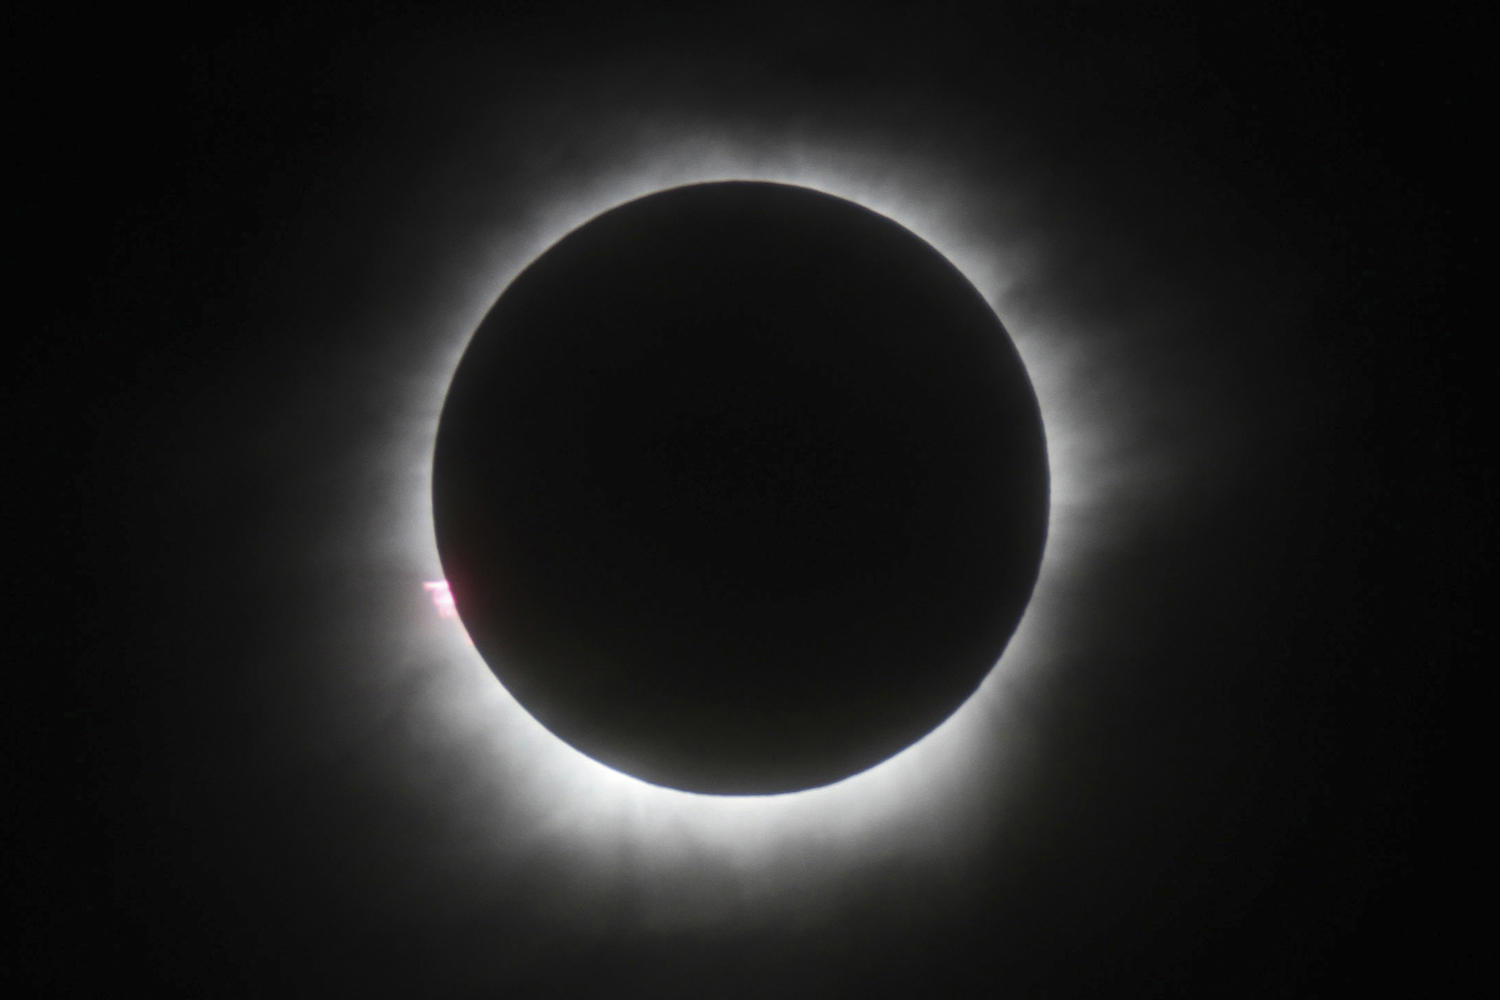 Eclipse can be viewed at state parks